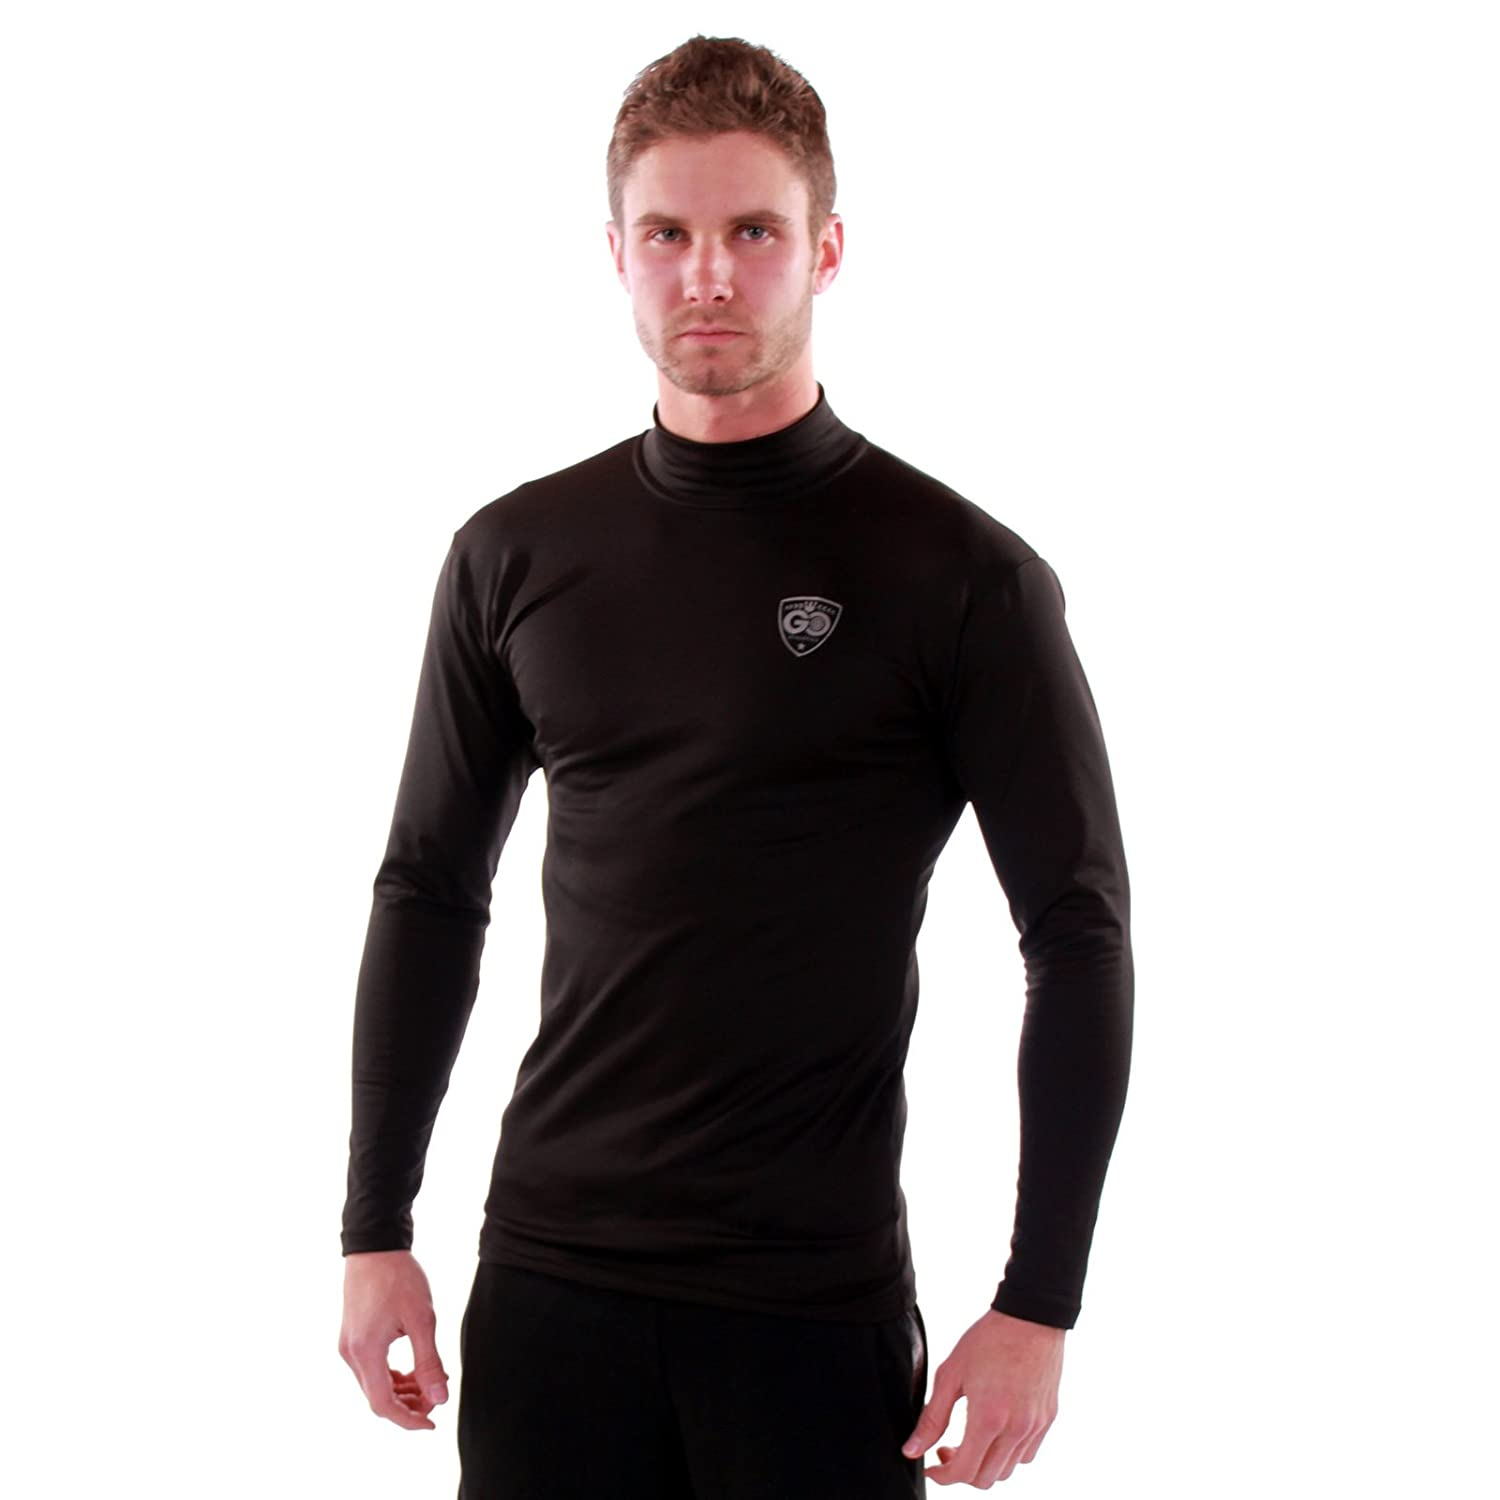 GO Cold Weather Gear Thermal Base Layer Shirt with Mock Neck